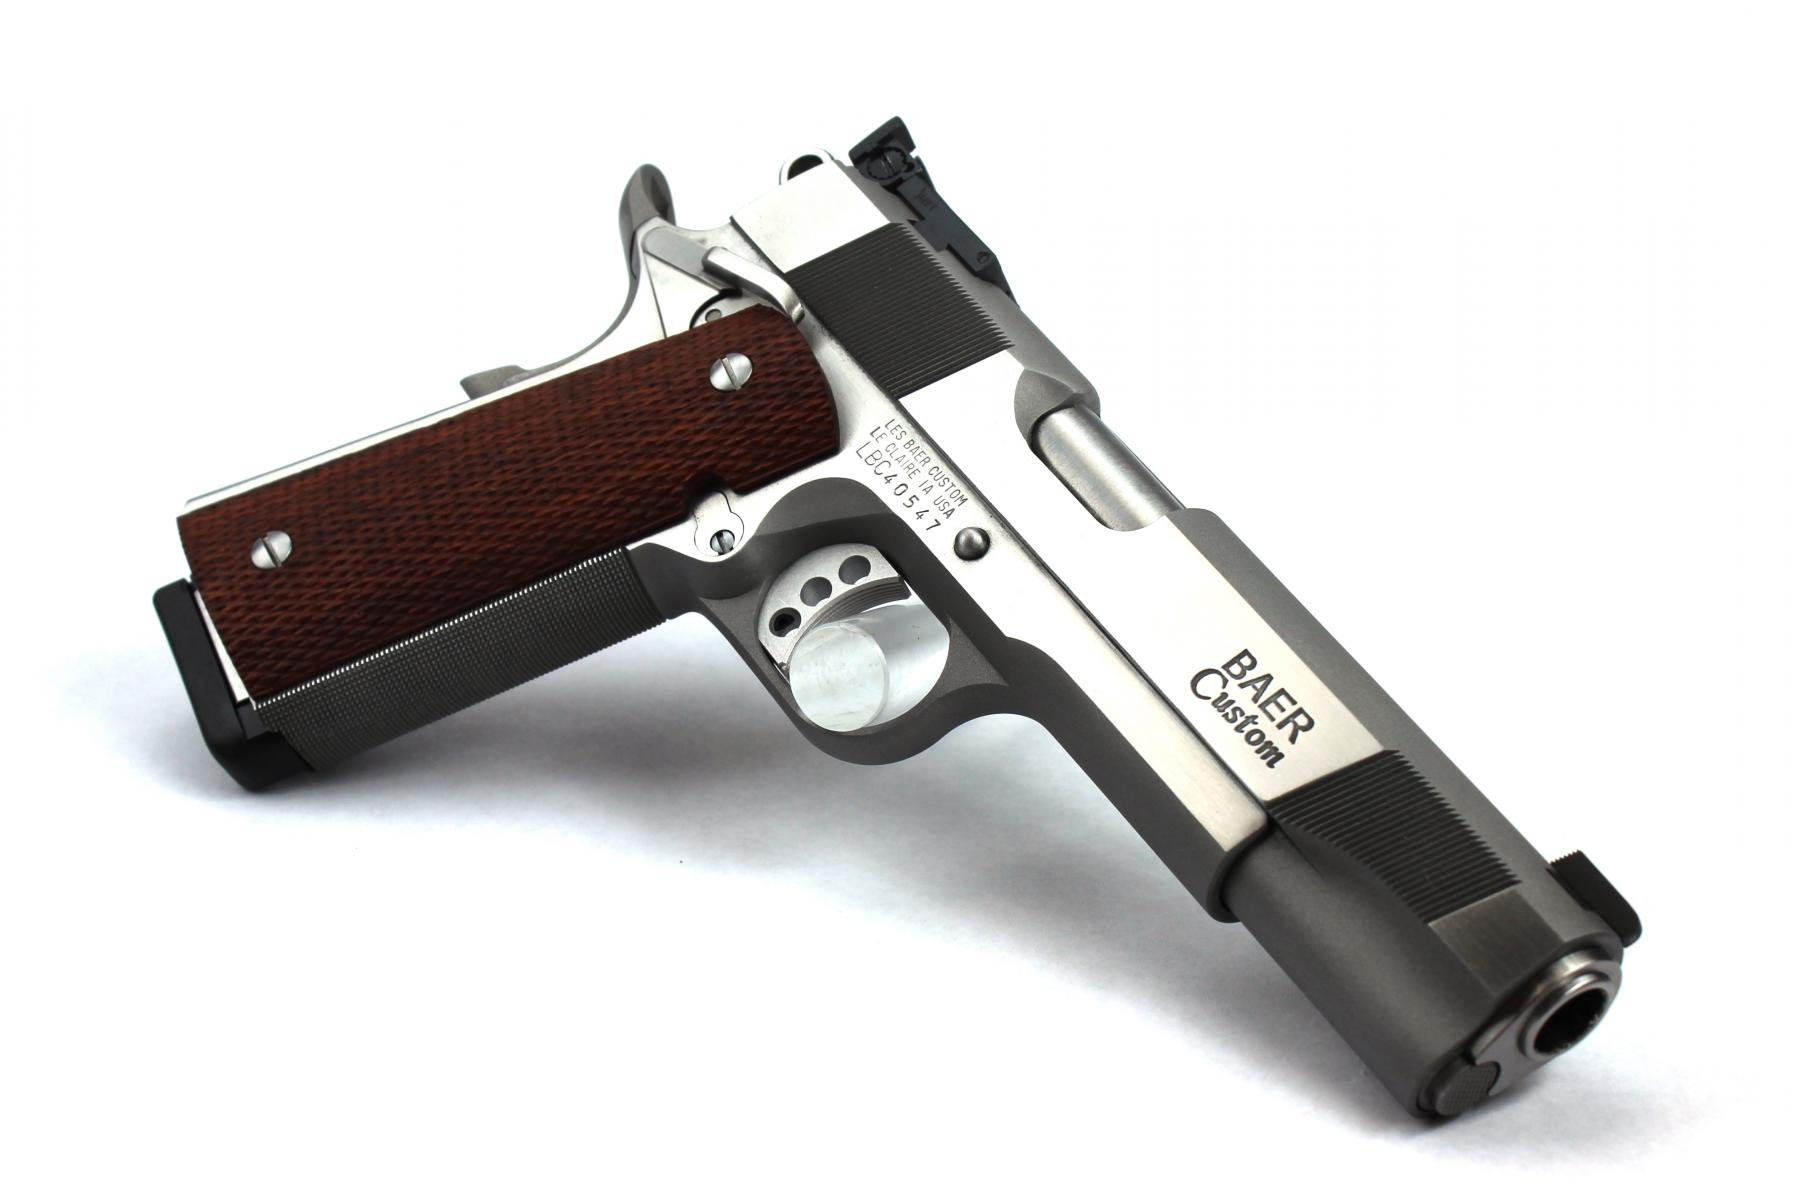 "Baer Custom 1911 Concept V | .45 ACP 5"" Barrel, Stainless Frame/Slide, Adjustable Rear Sight, 30 LPI Frontstrap Checkering, Ambi Safety, 2 Magazines"